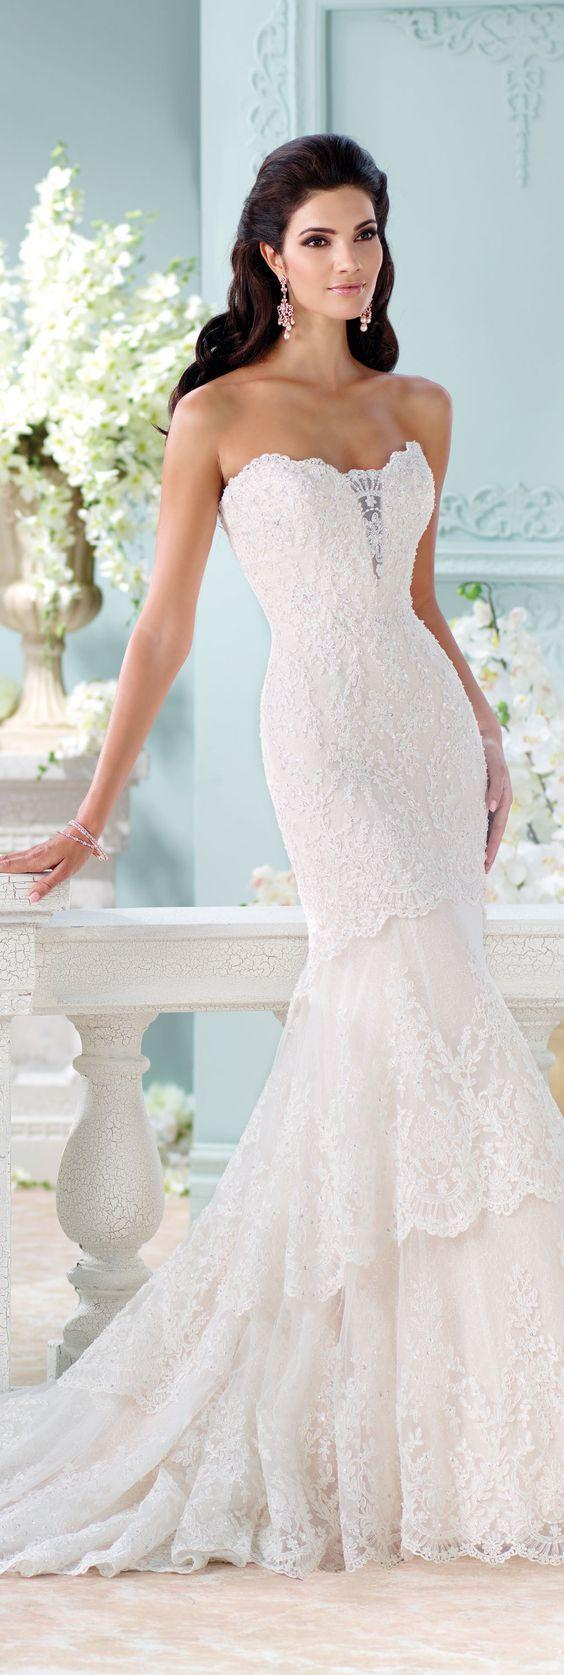 Mariage - Fit And Flare Wedding Dress